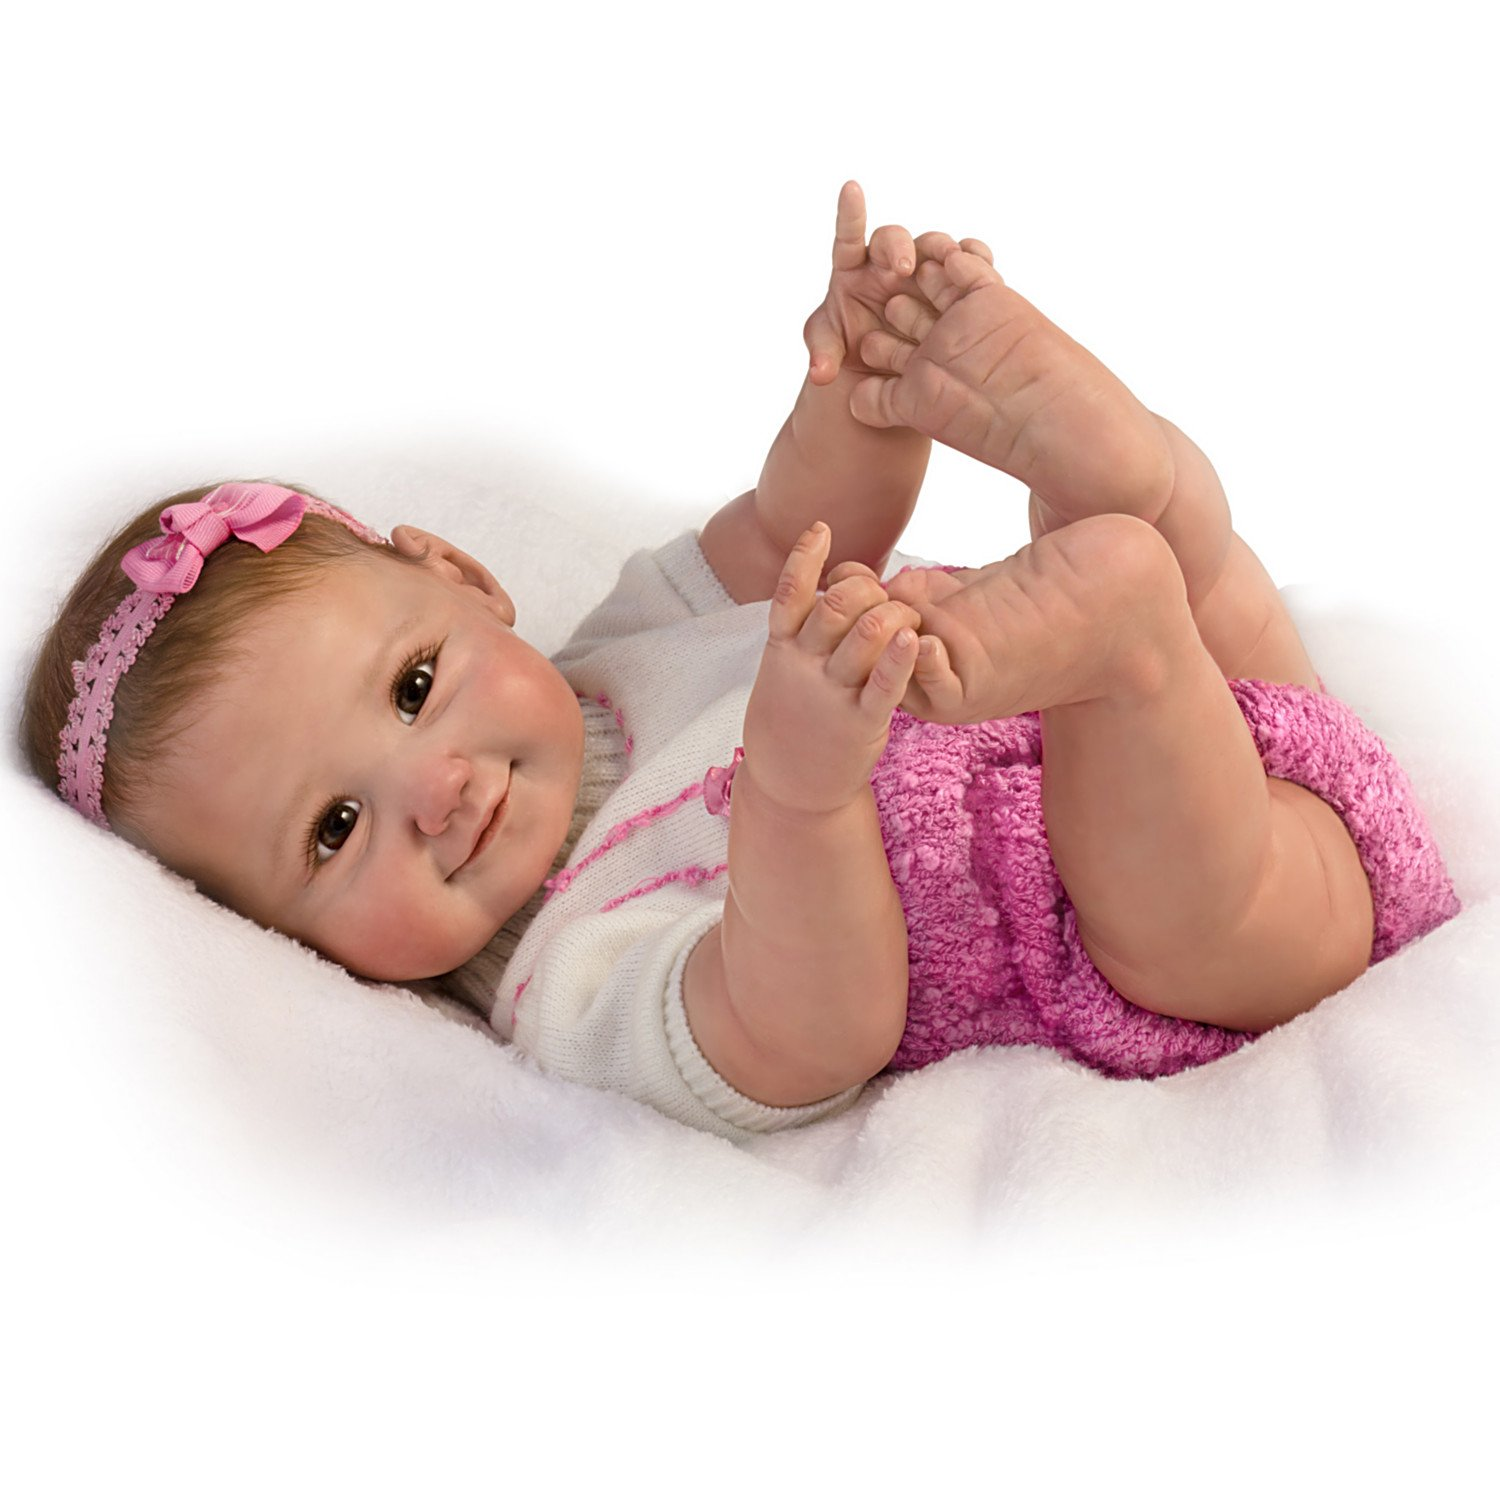 Ashton-Drake So Truly Real 10 Little Fingers, 10 Little Toes Poseable Baby Doll by The Ashton-Drake Galleries by The Ashton-Drake Galleries